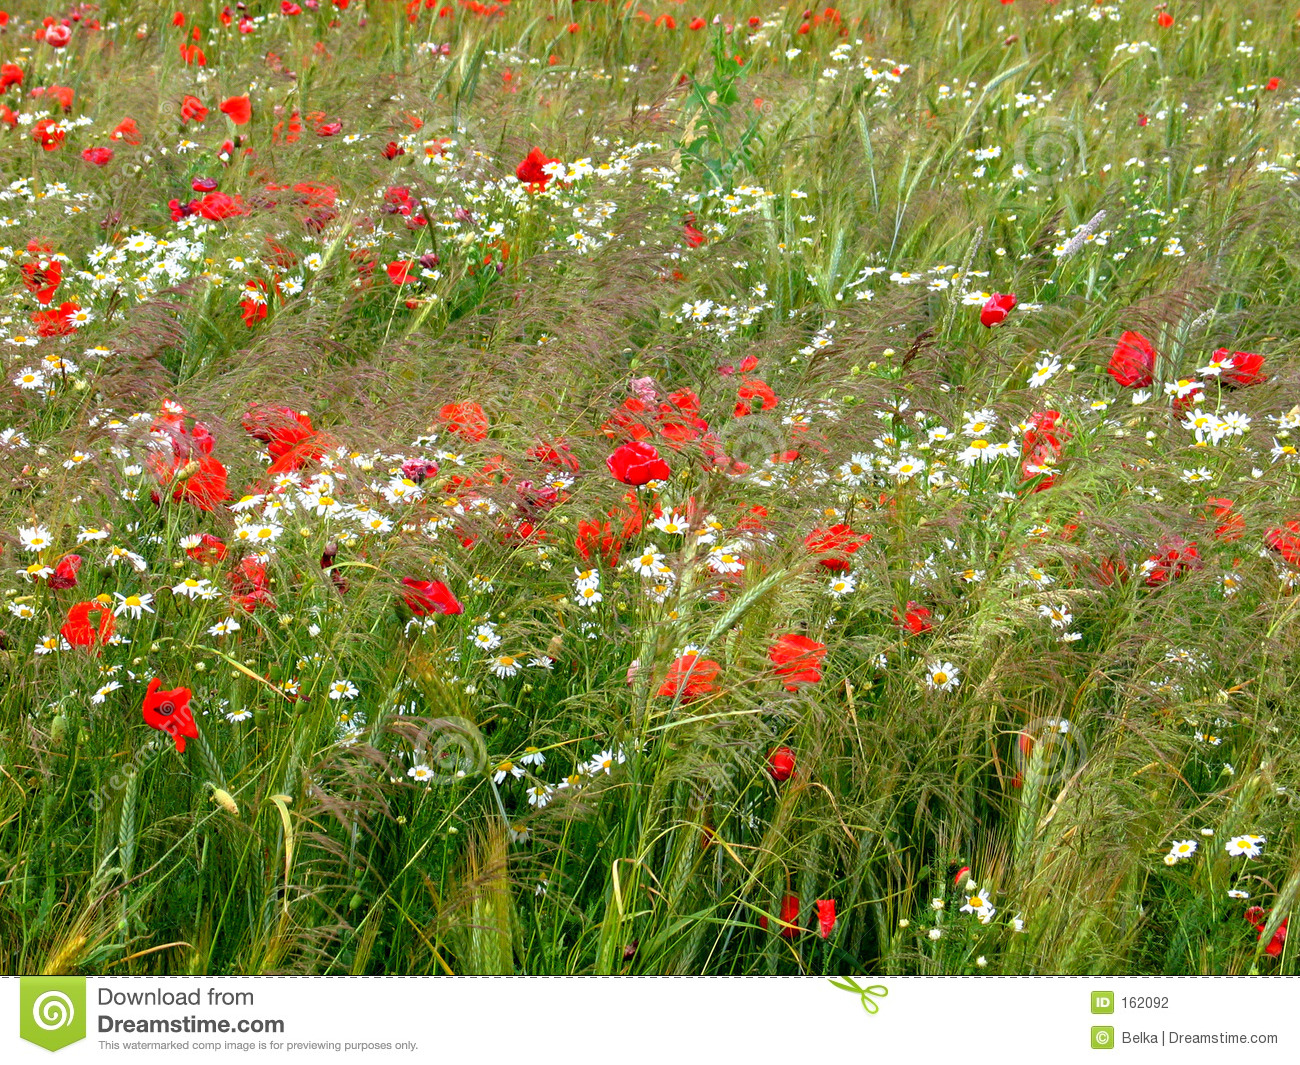 Cornfield with poppies